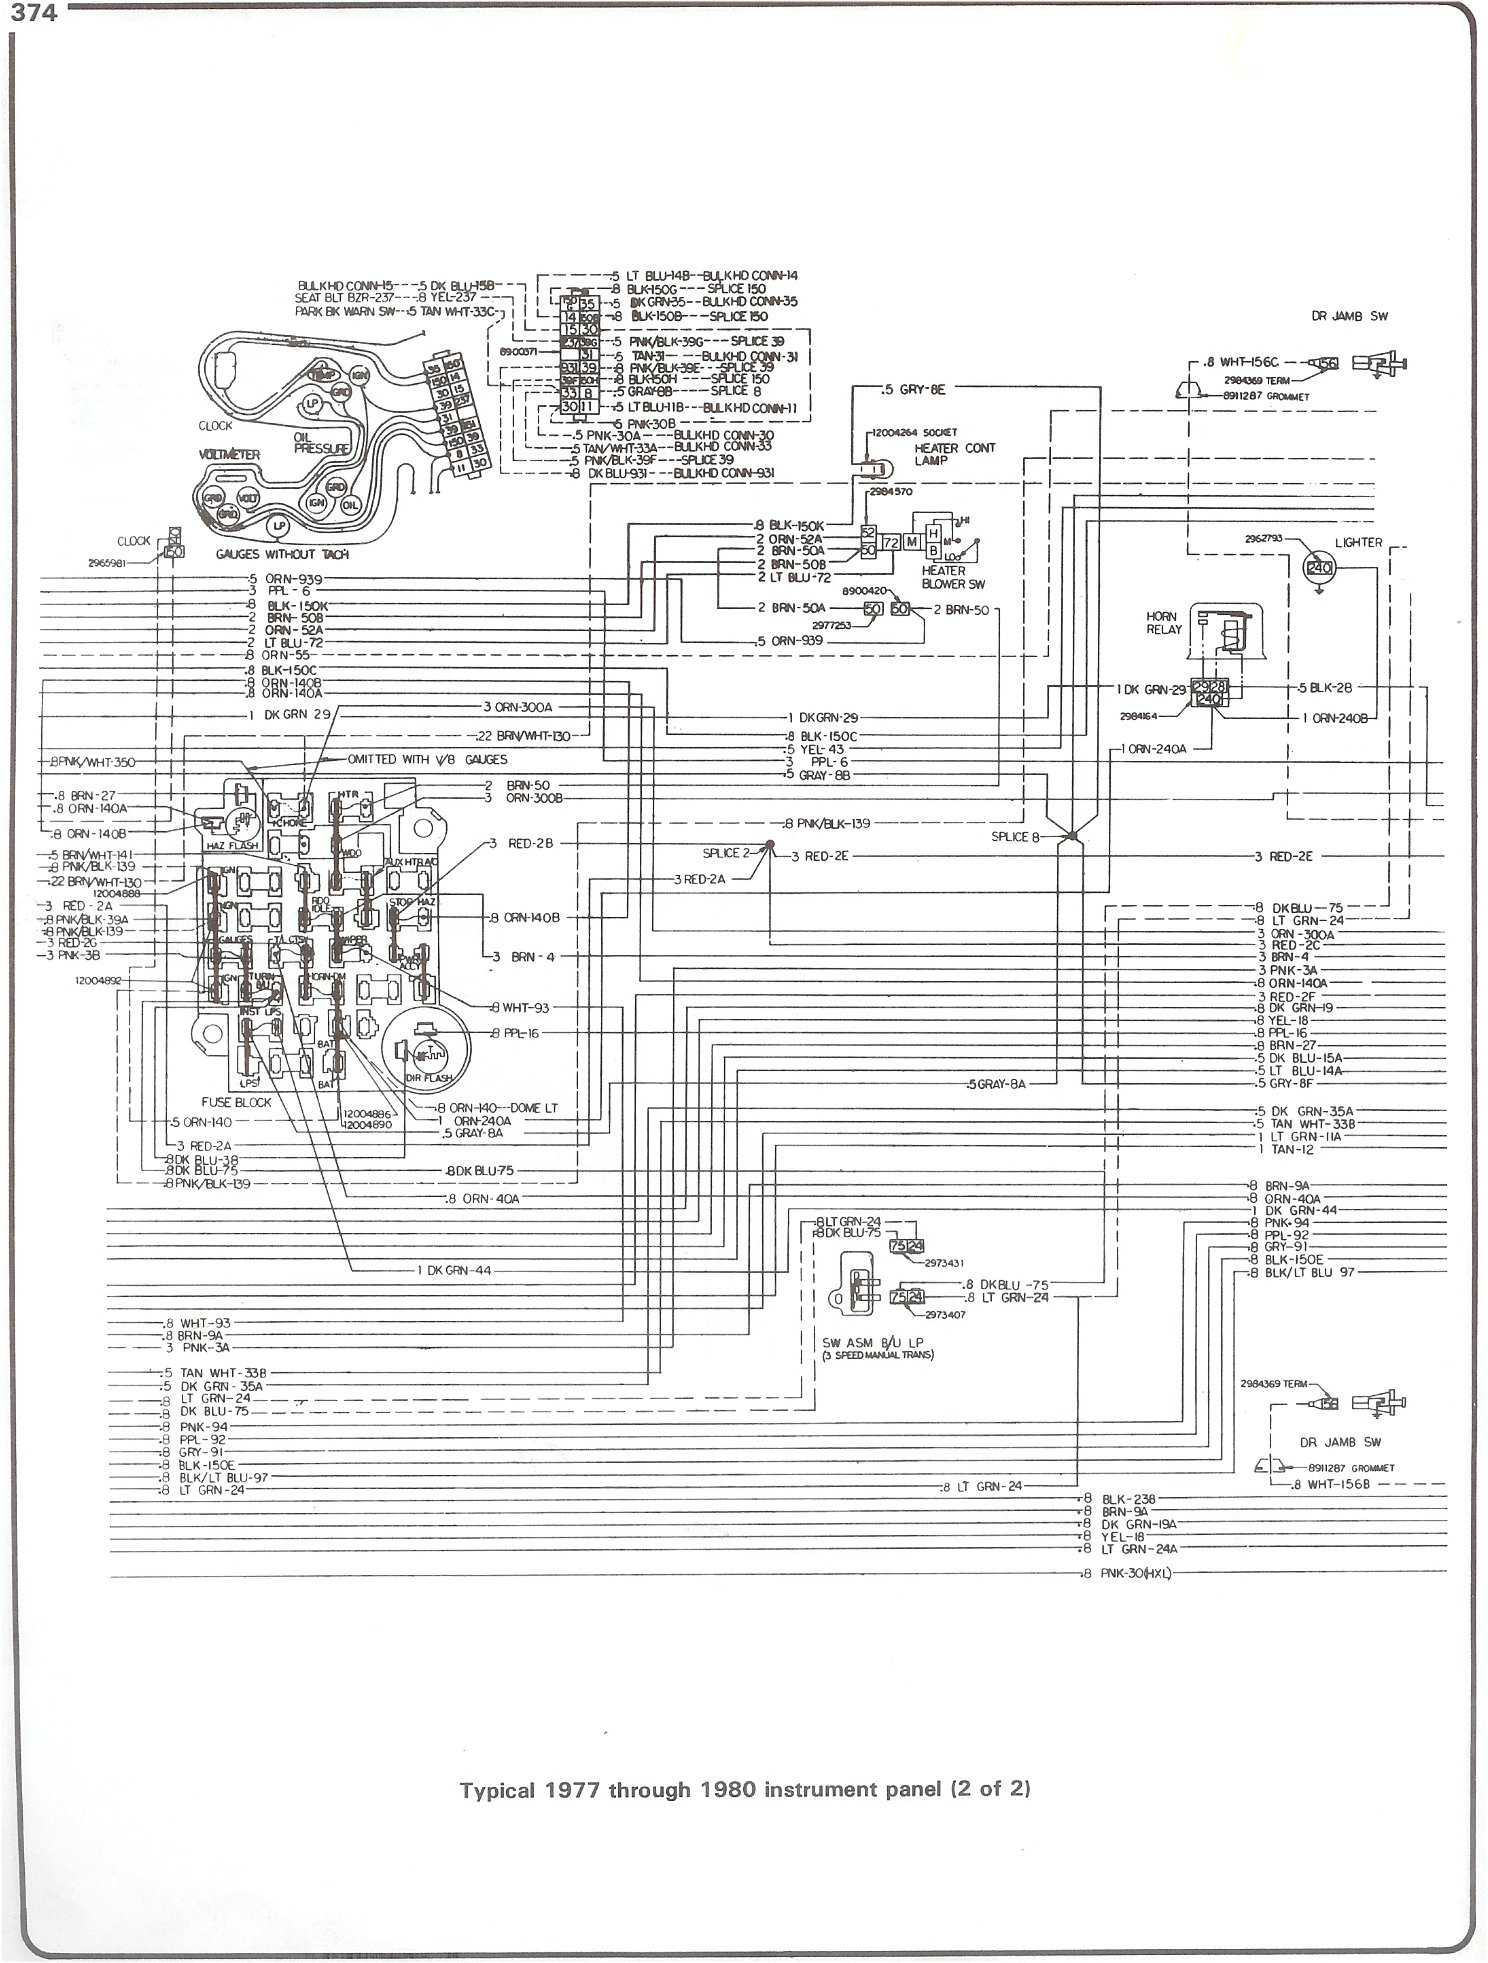 77 80_instrument_pg2 1978 chevy truck wiring diagram chevy malibu ignition wiring 1978 chevy truck fuse box diagram at creativeand.co